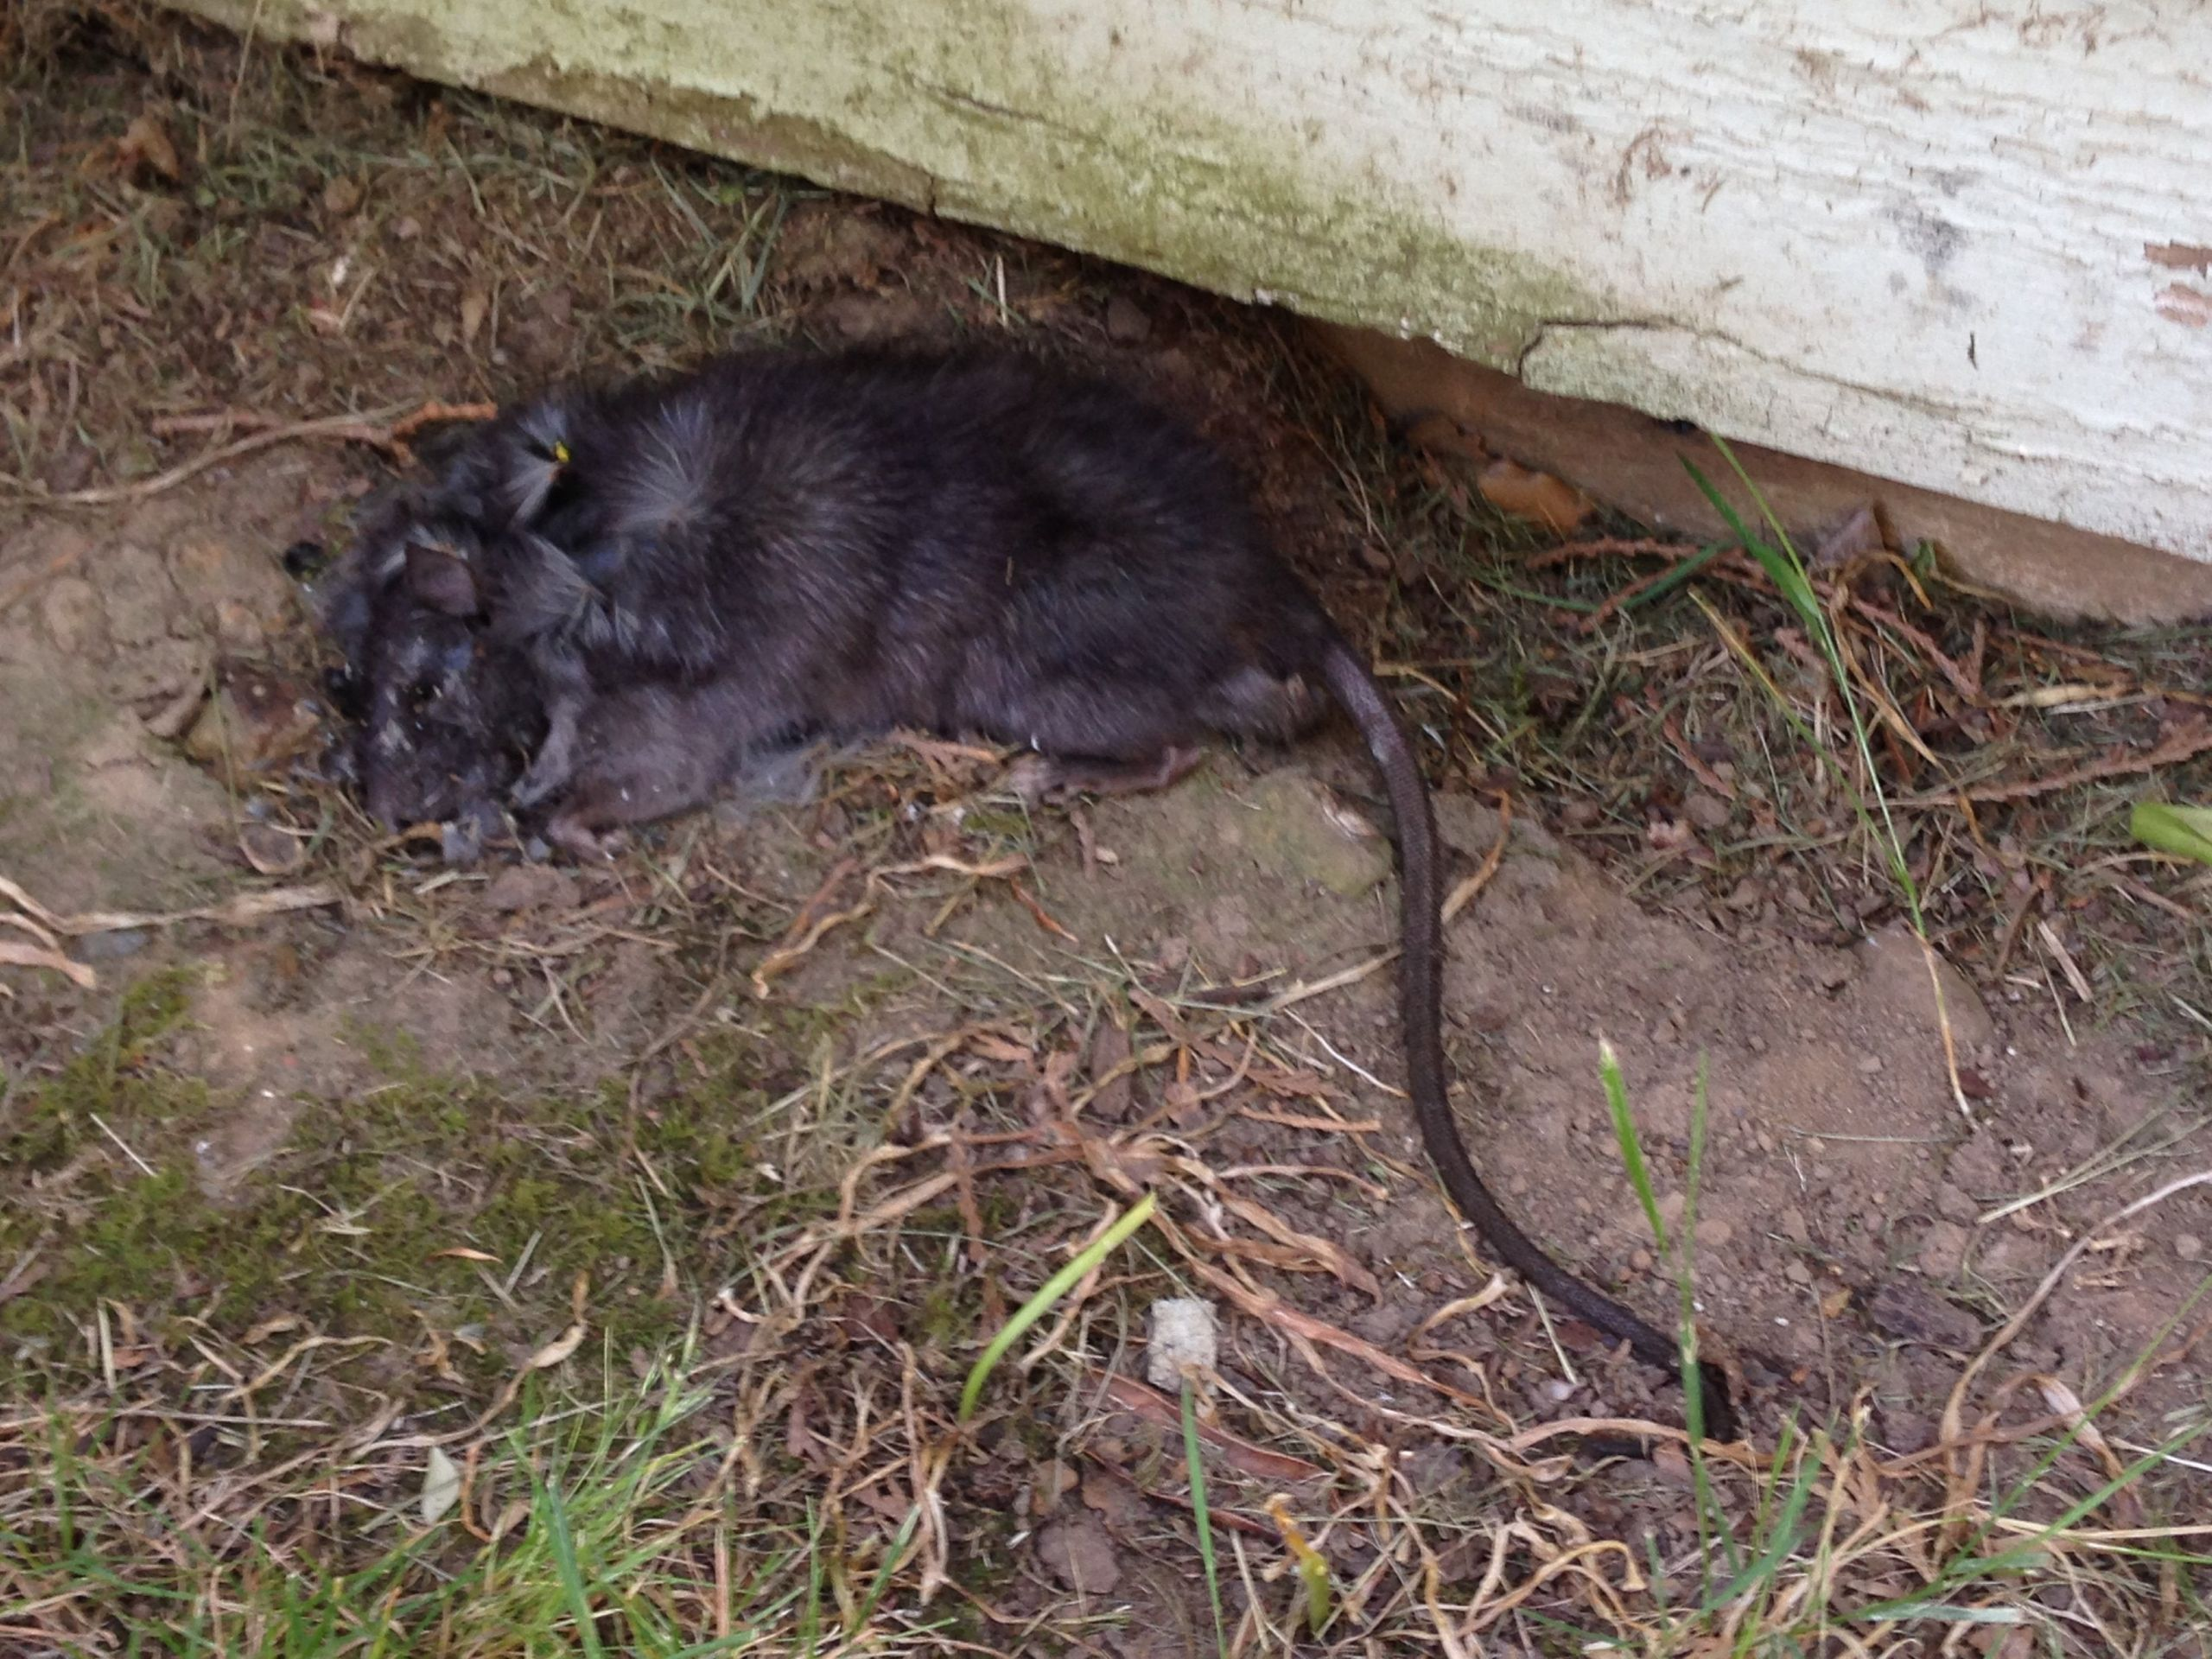 Rats In Backyard  Found a huge black rat in my backyard is this normal